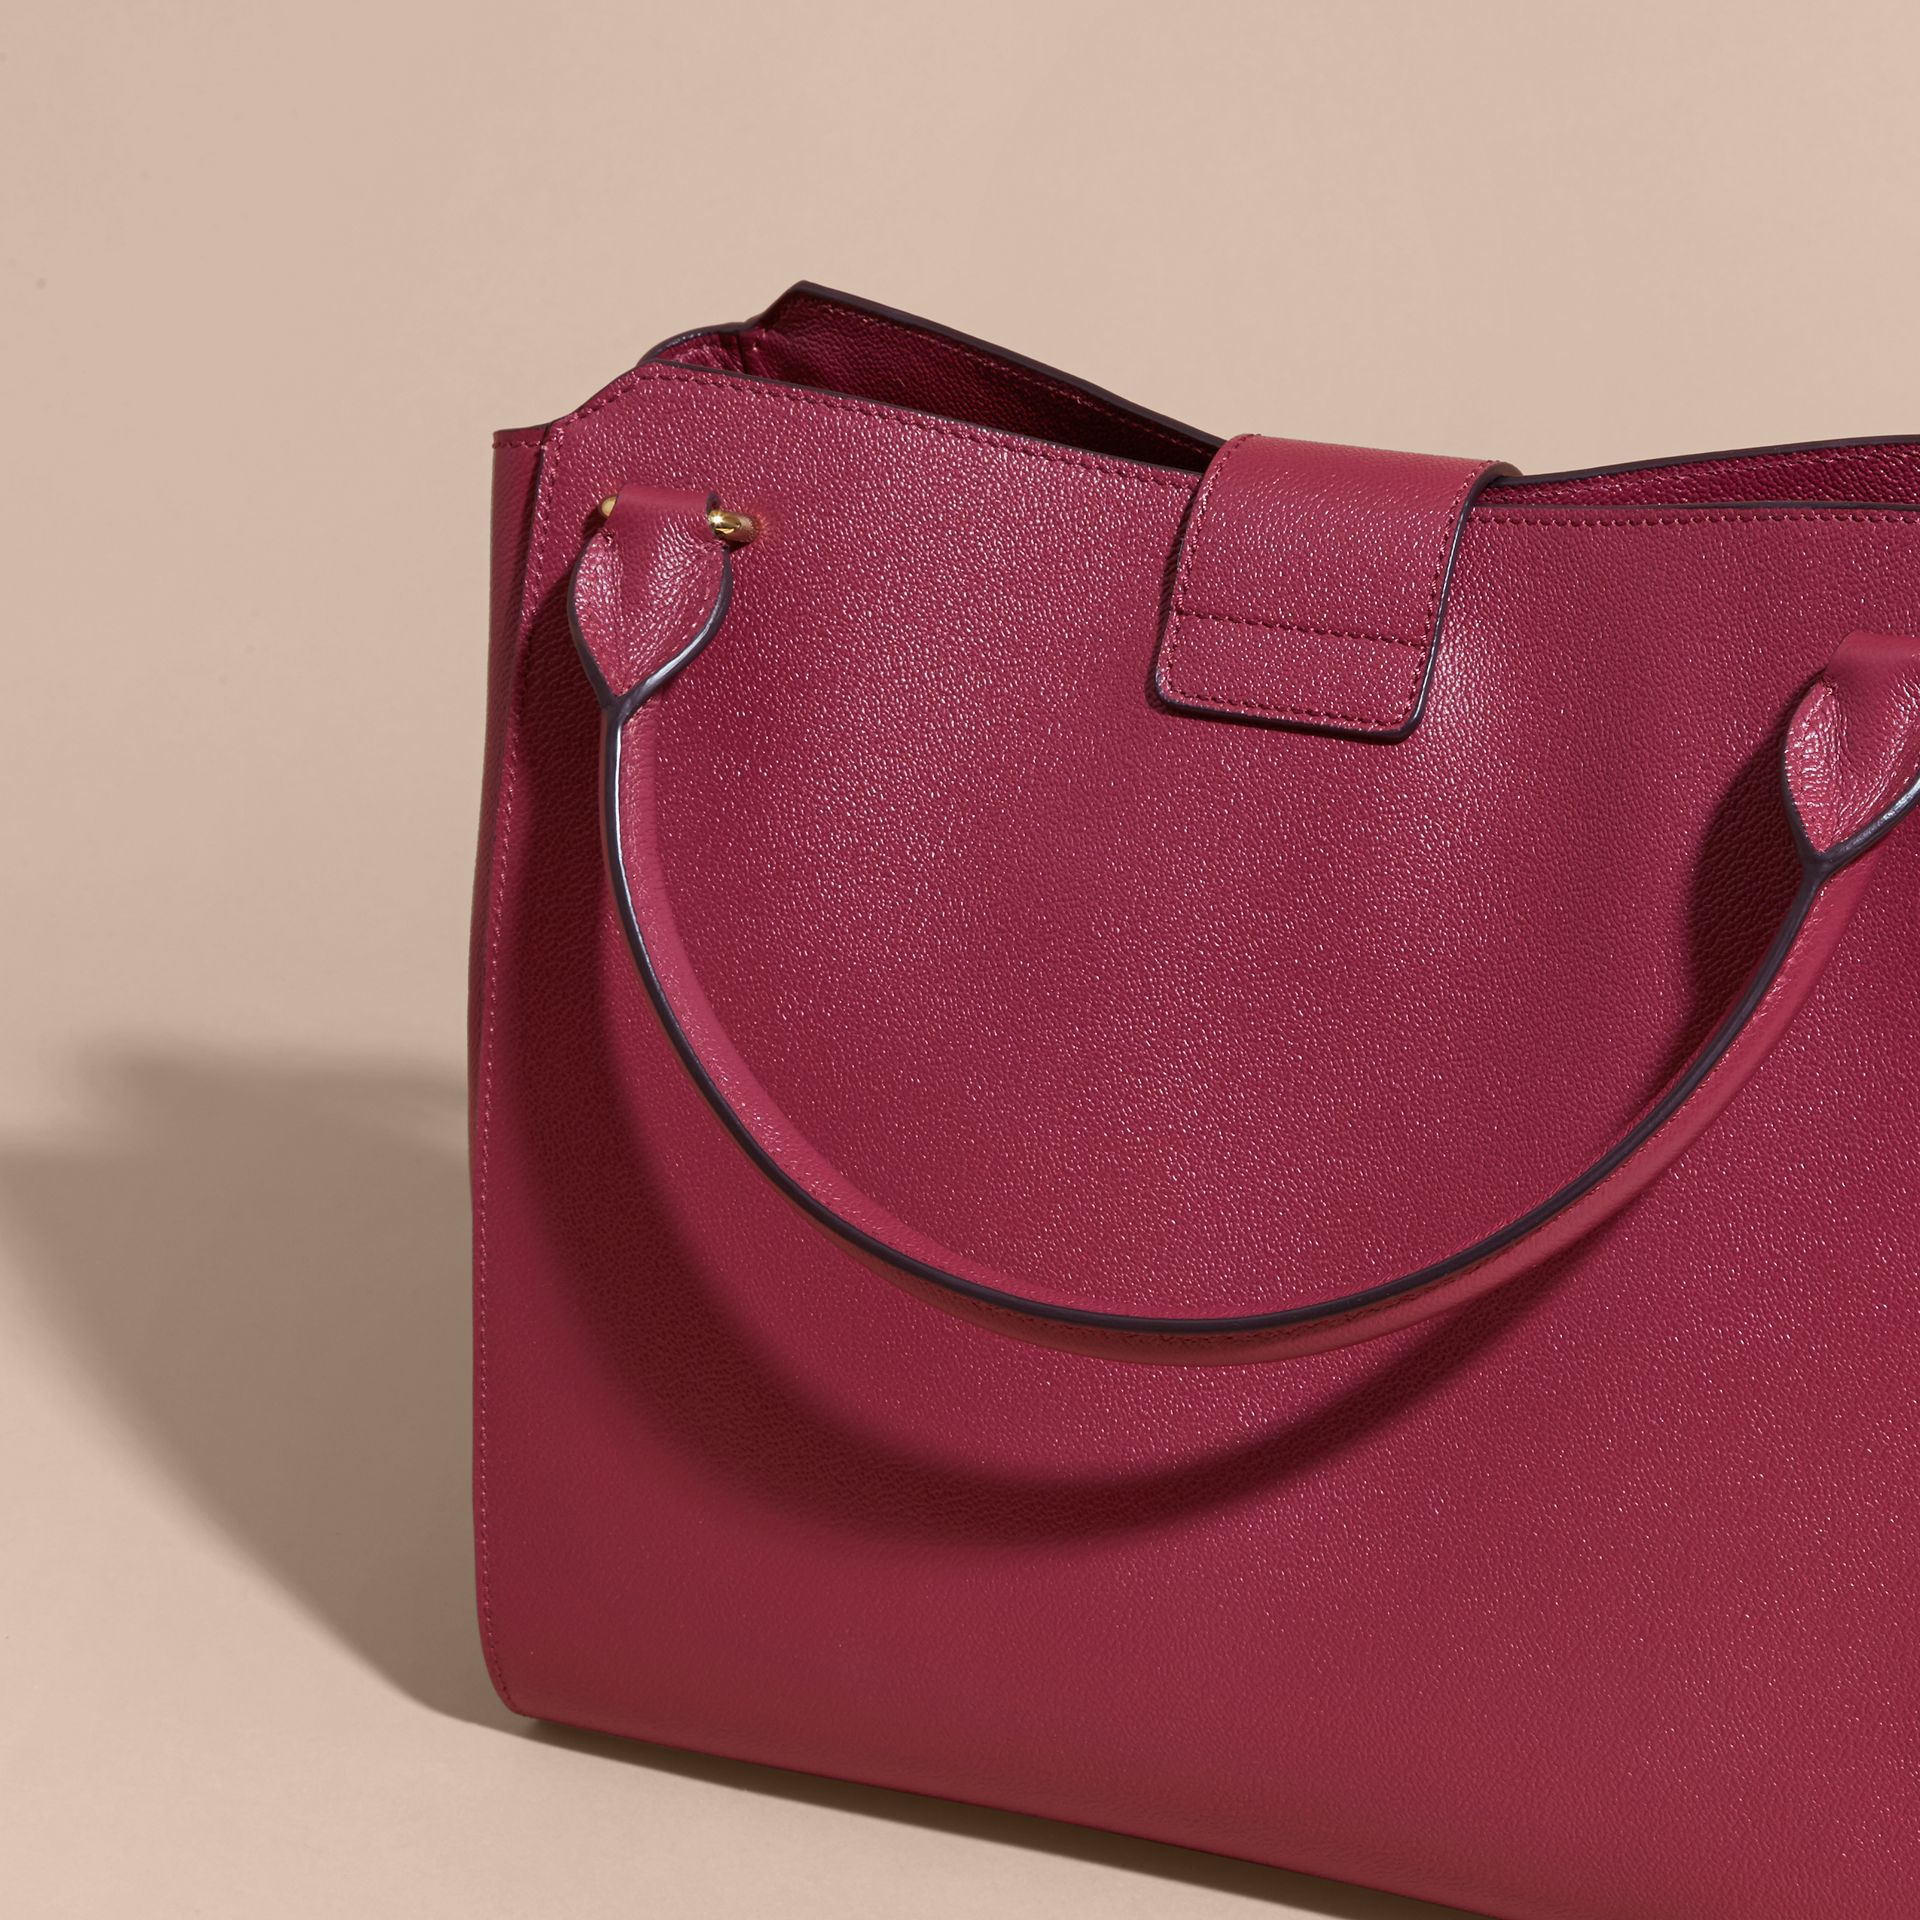 The Large Buckle Tote in Grainy Leather in Dark Plum - Women | Burberry - gallery image 5